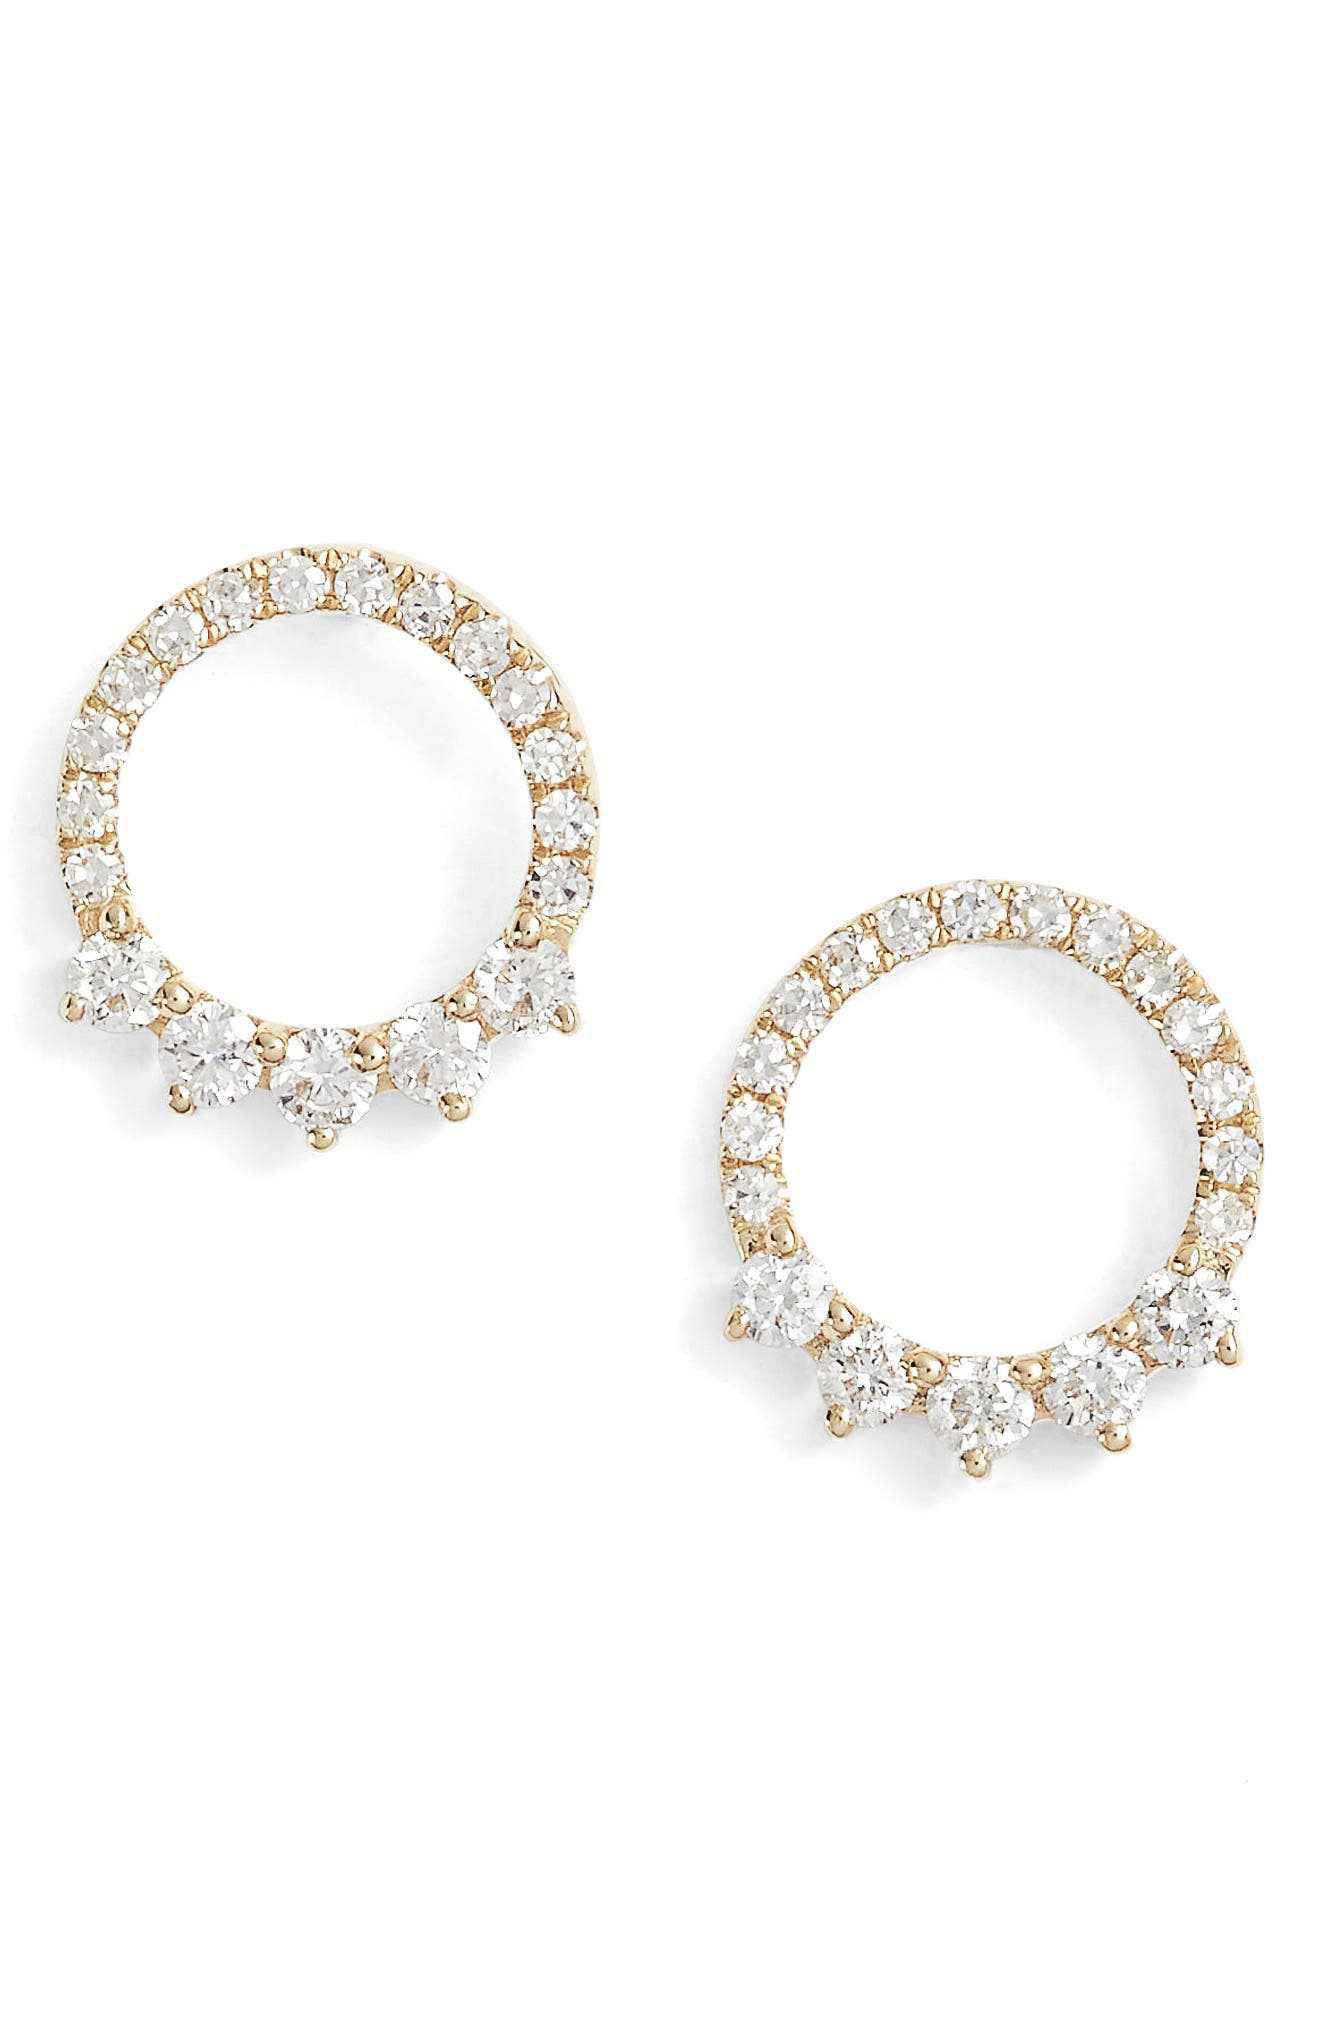 Floating Open Circle Stud Earrings,                         Main,                         color, Yellow Gold